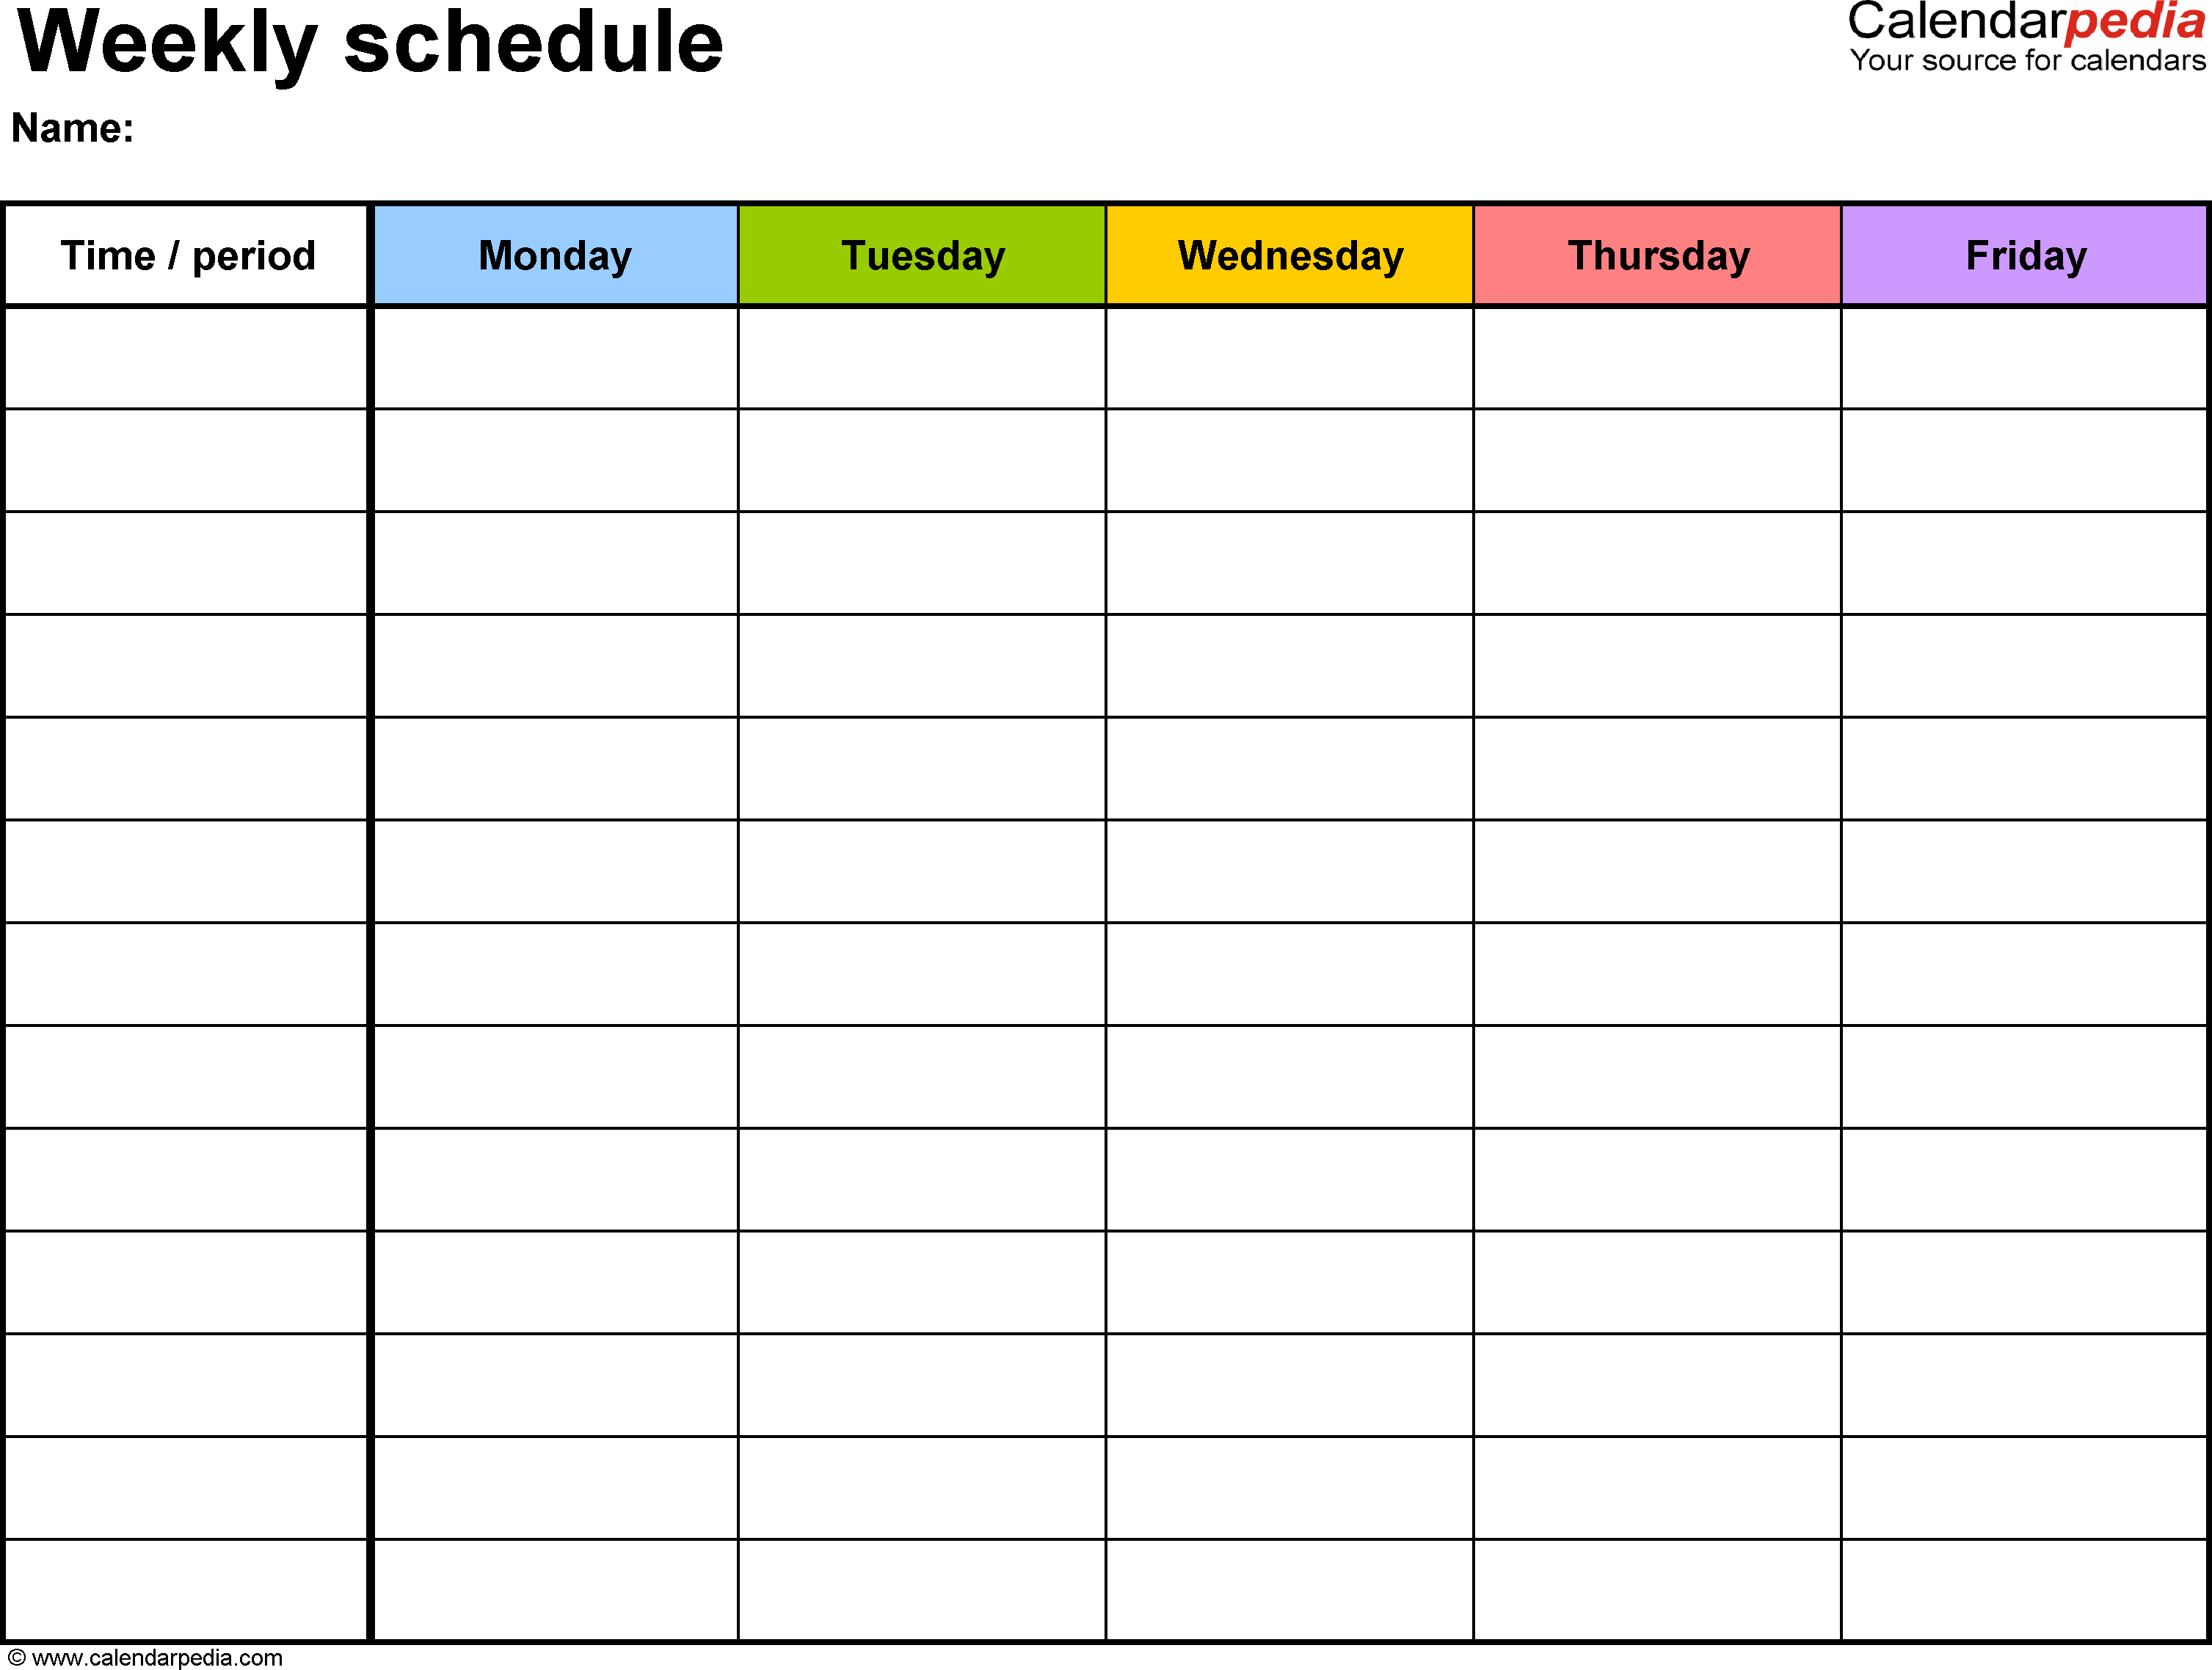 Weekly Schedule Template For Word Version 1: Landscape, 1 in 5 Day Weekly Calendar